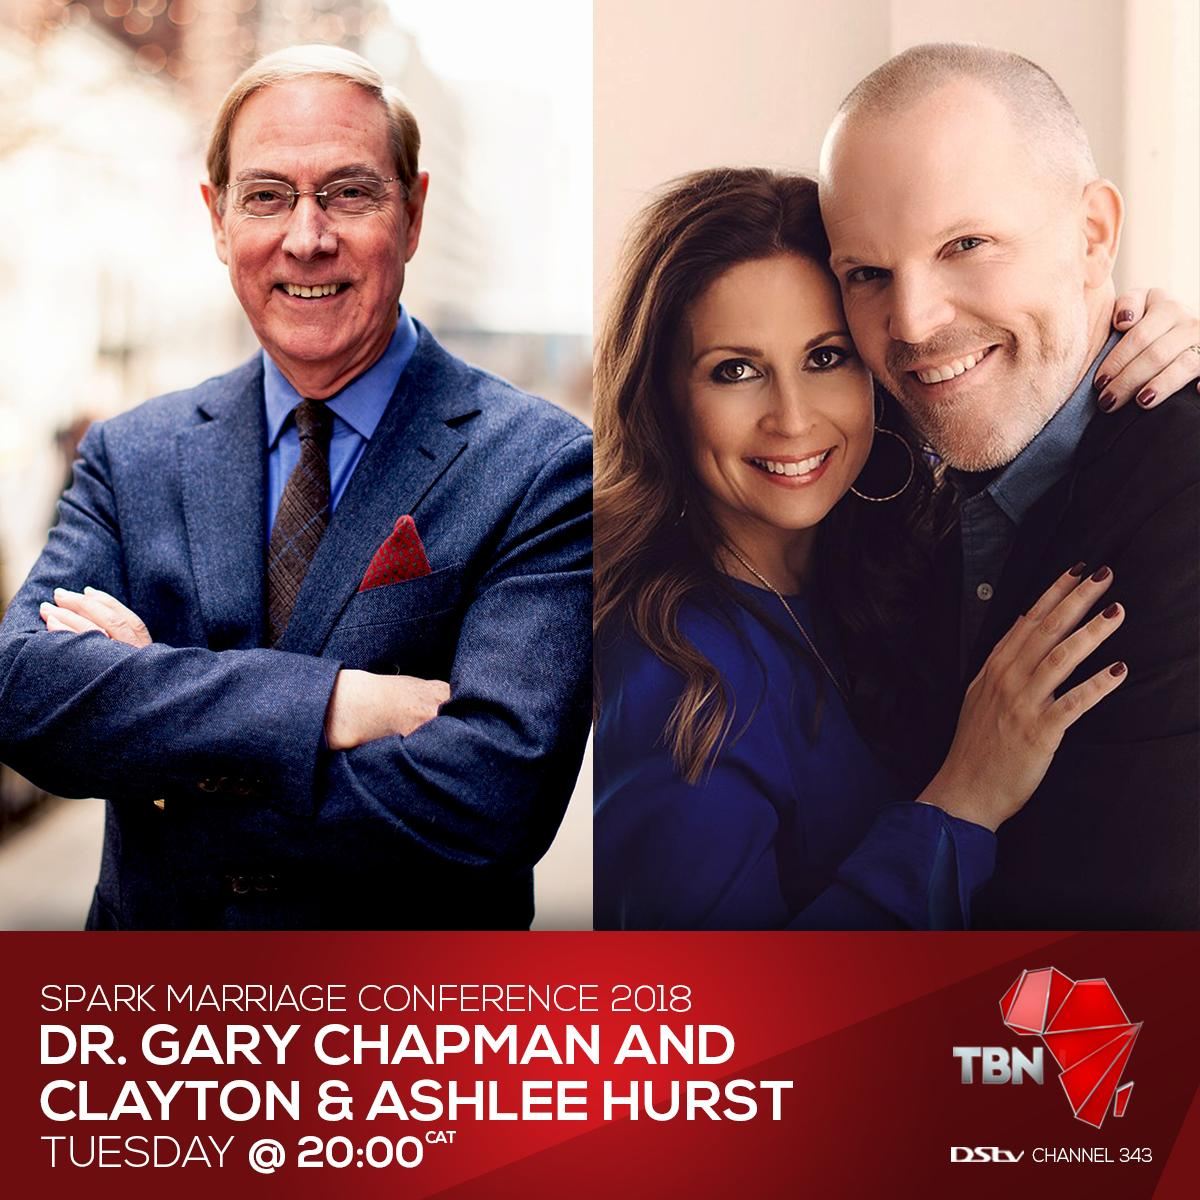 TBN in Africa on Twitter: